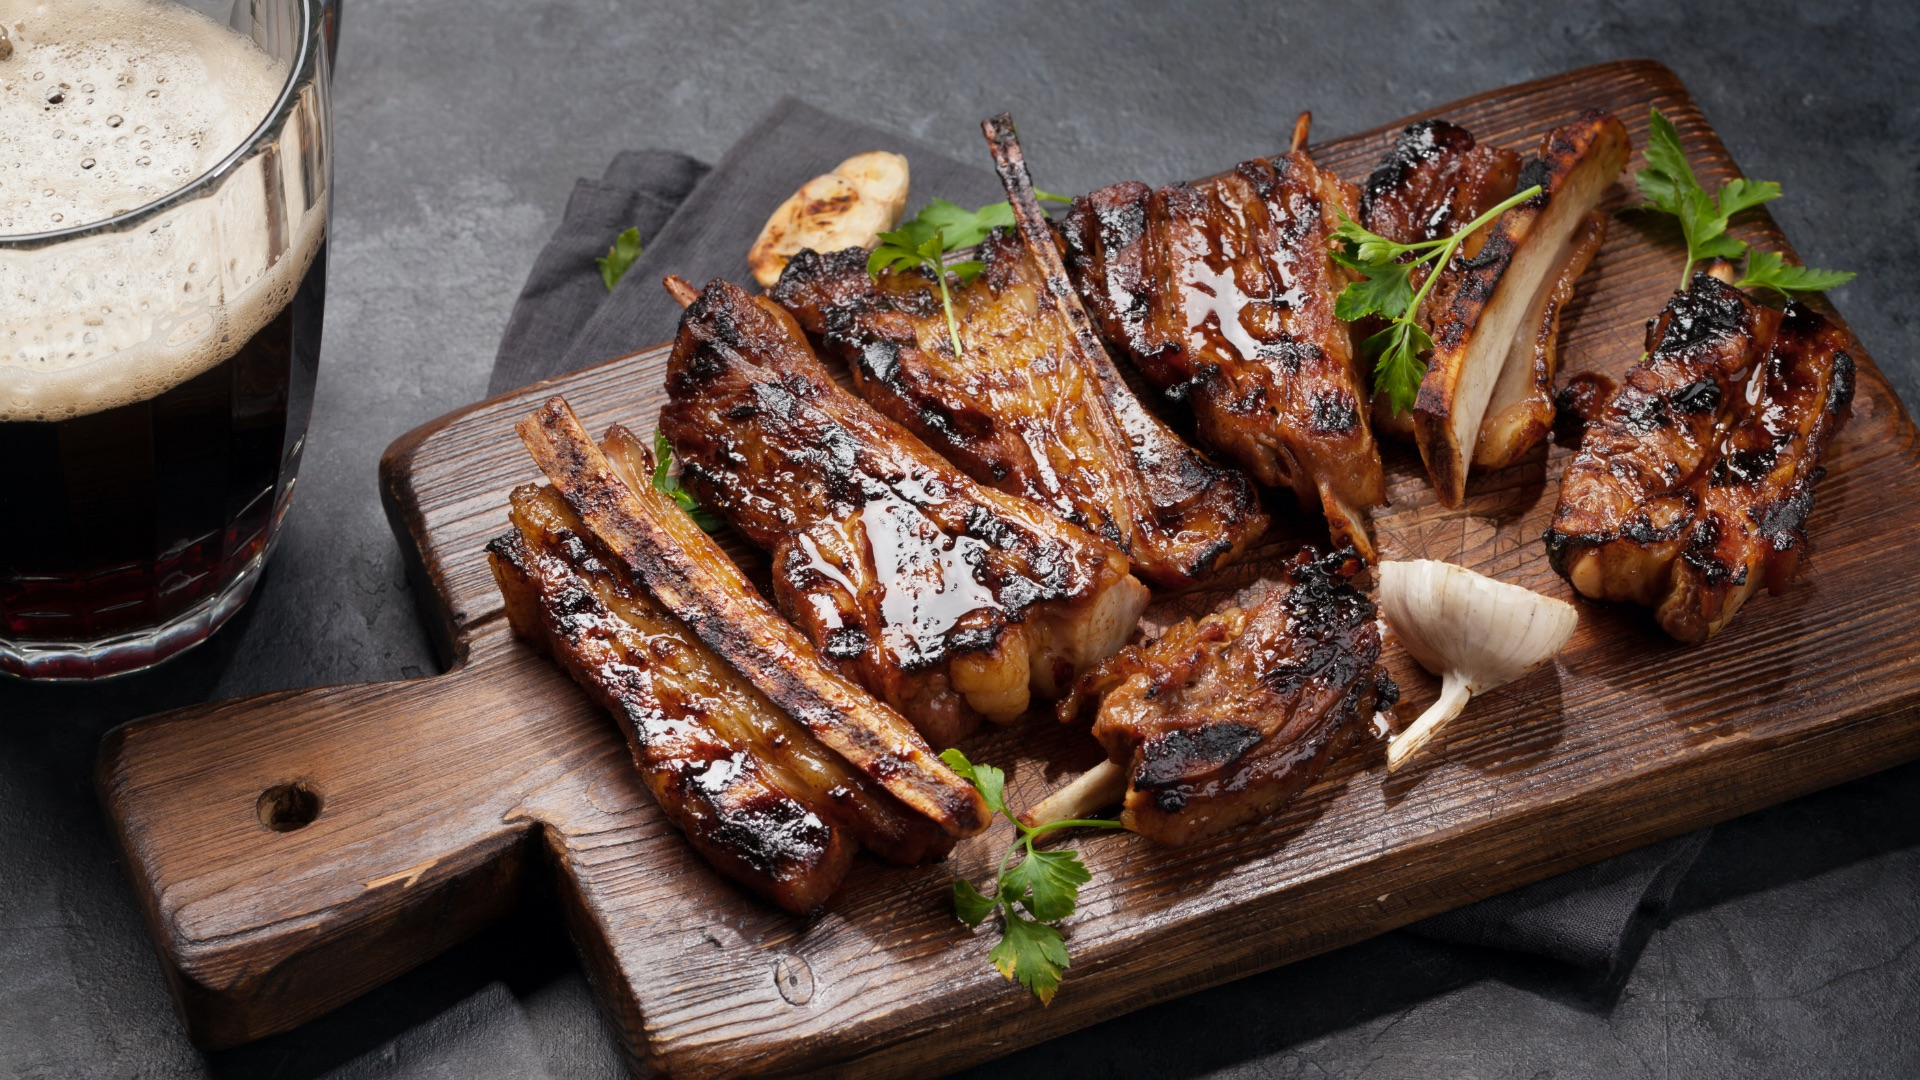 Costillas con salsa barbecue de whisky y café